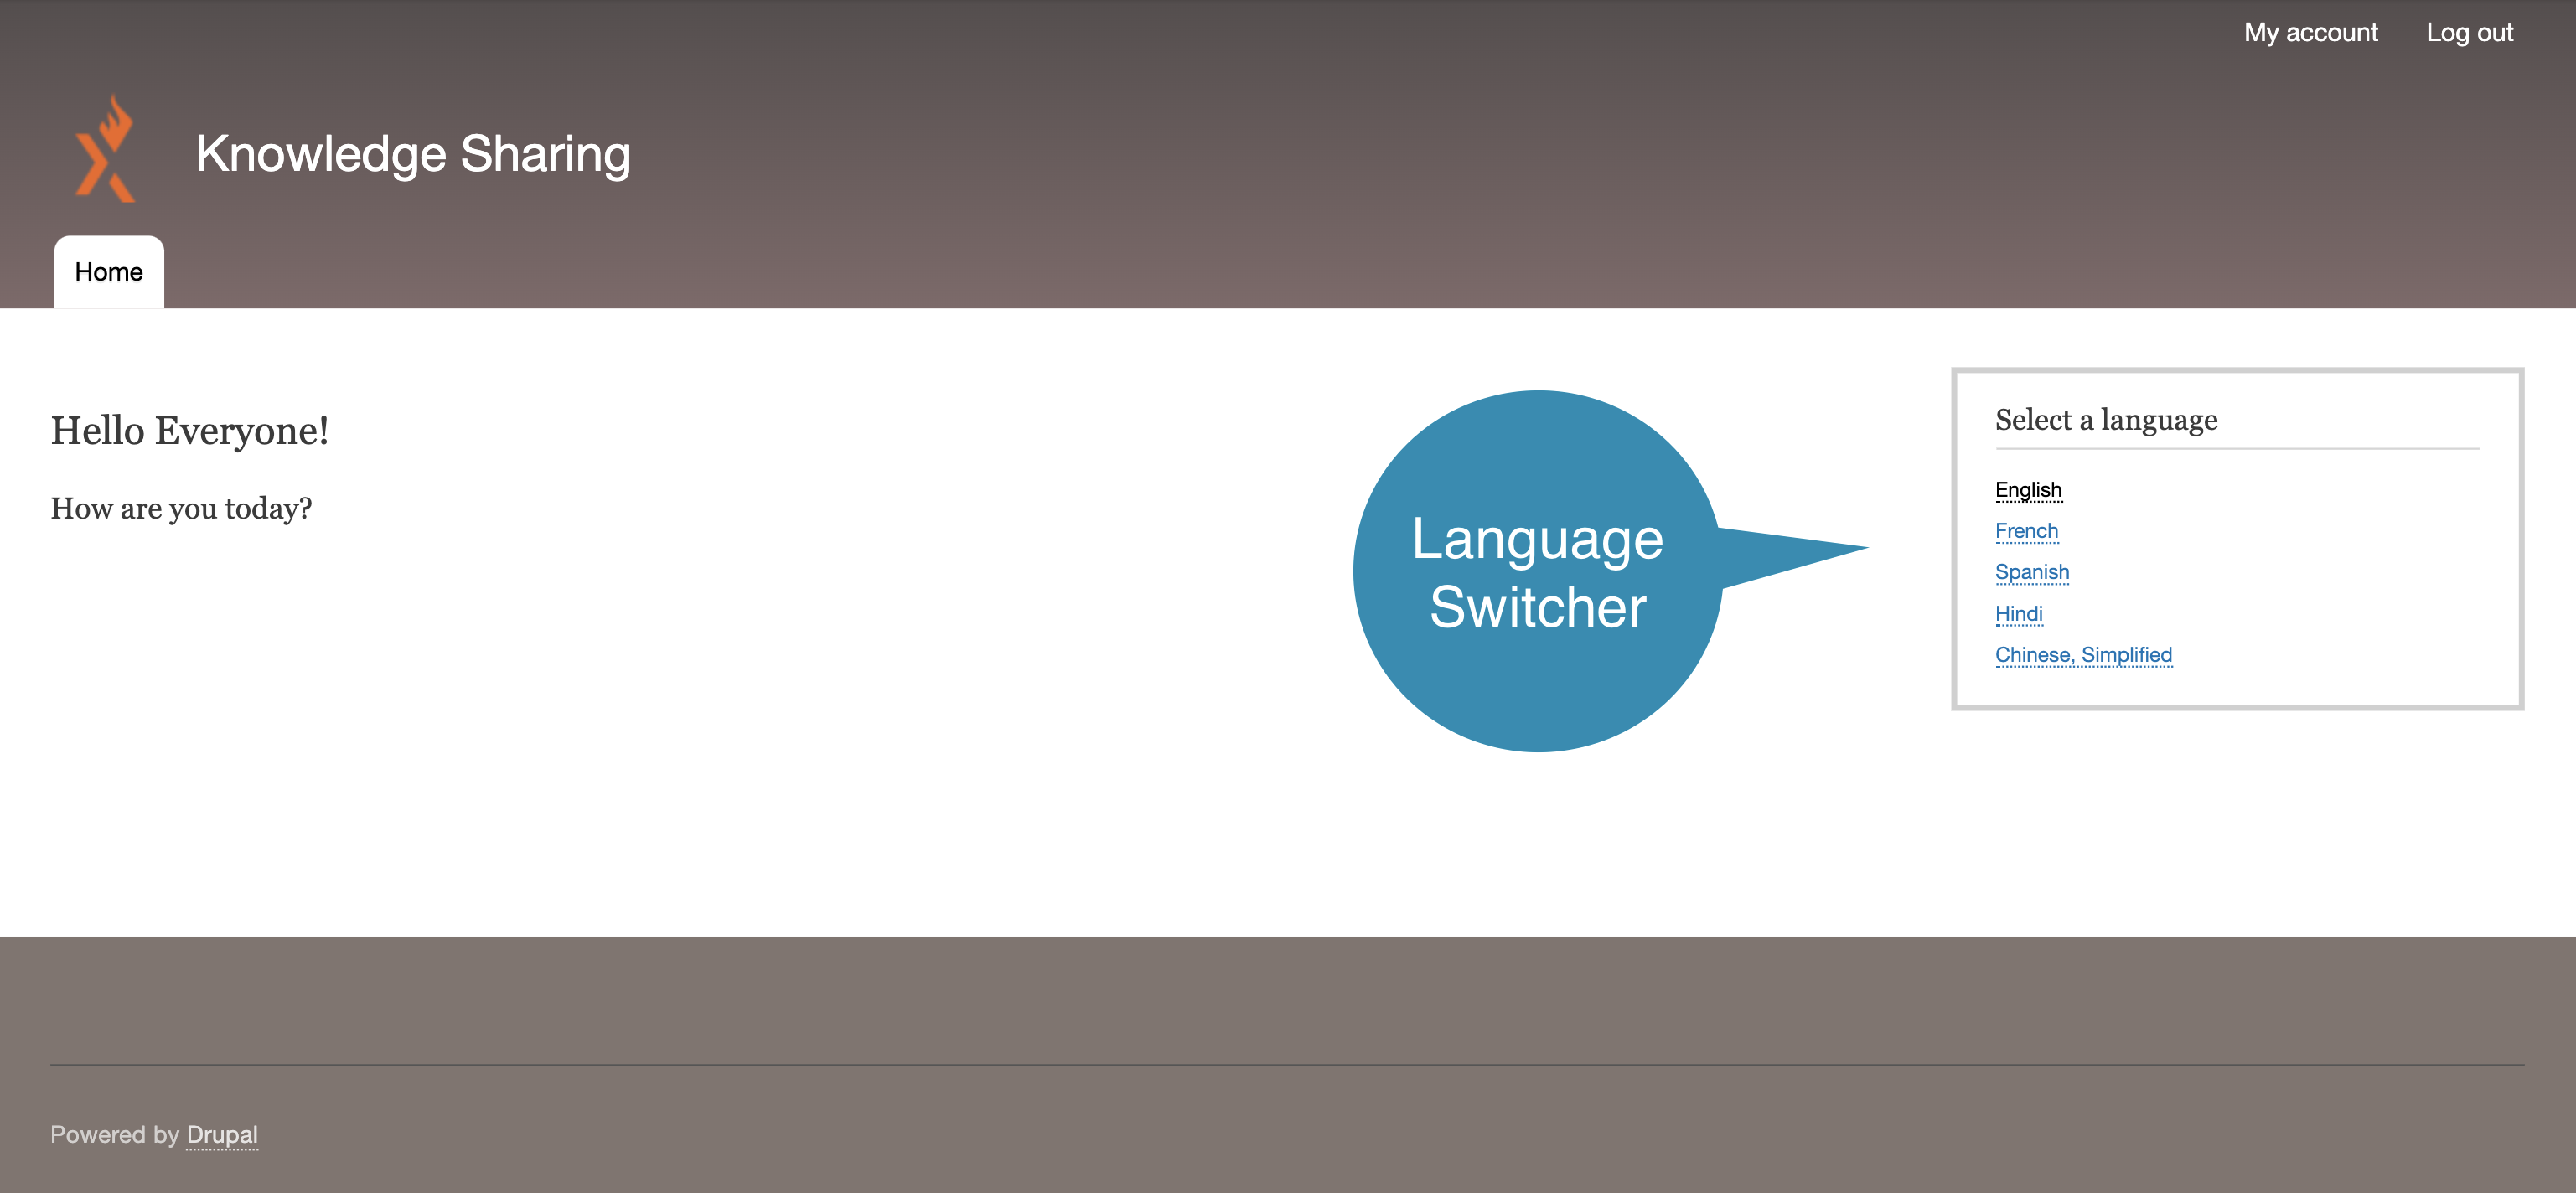 Knowledge sharing - Language switcher listing